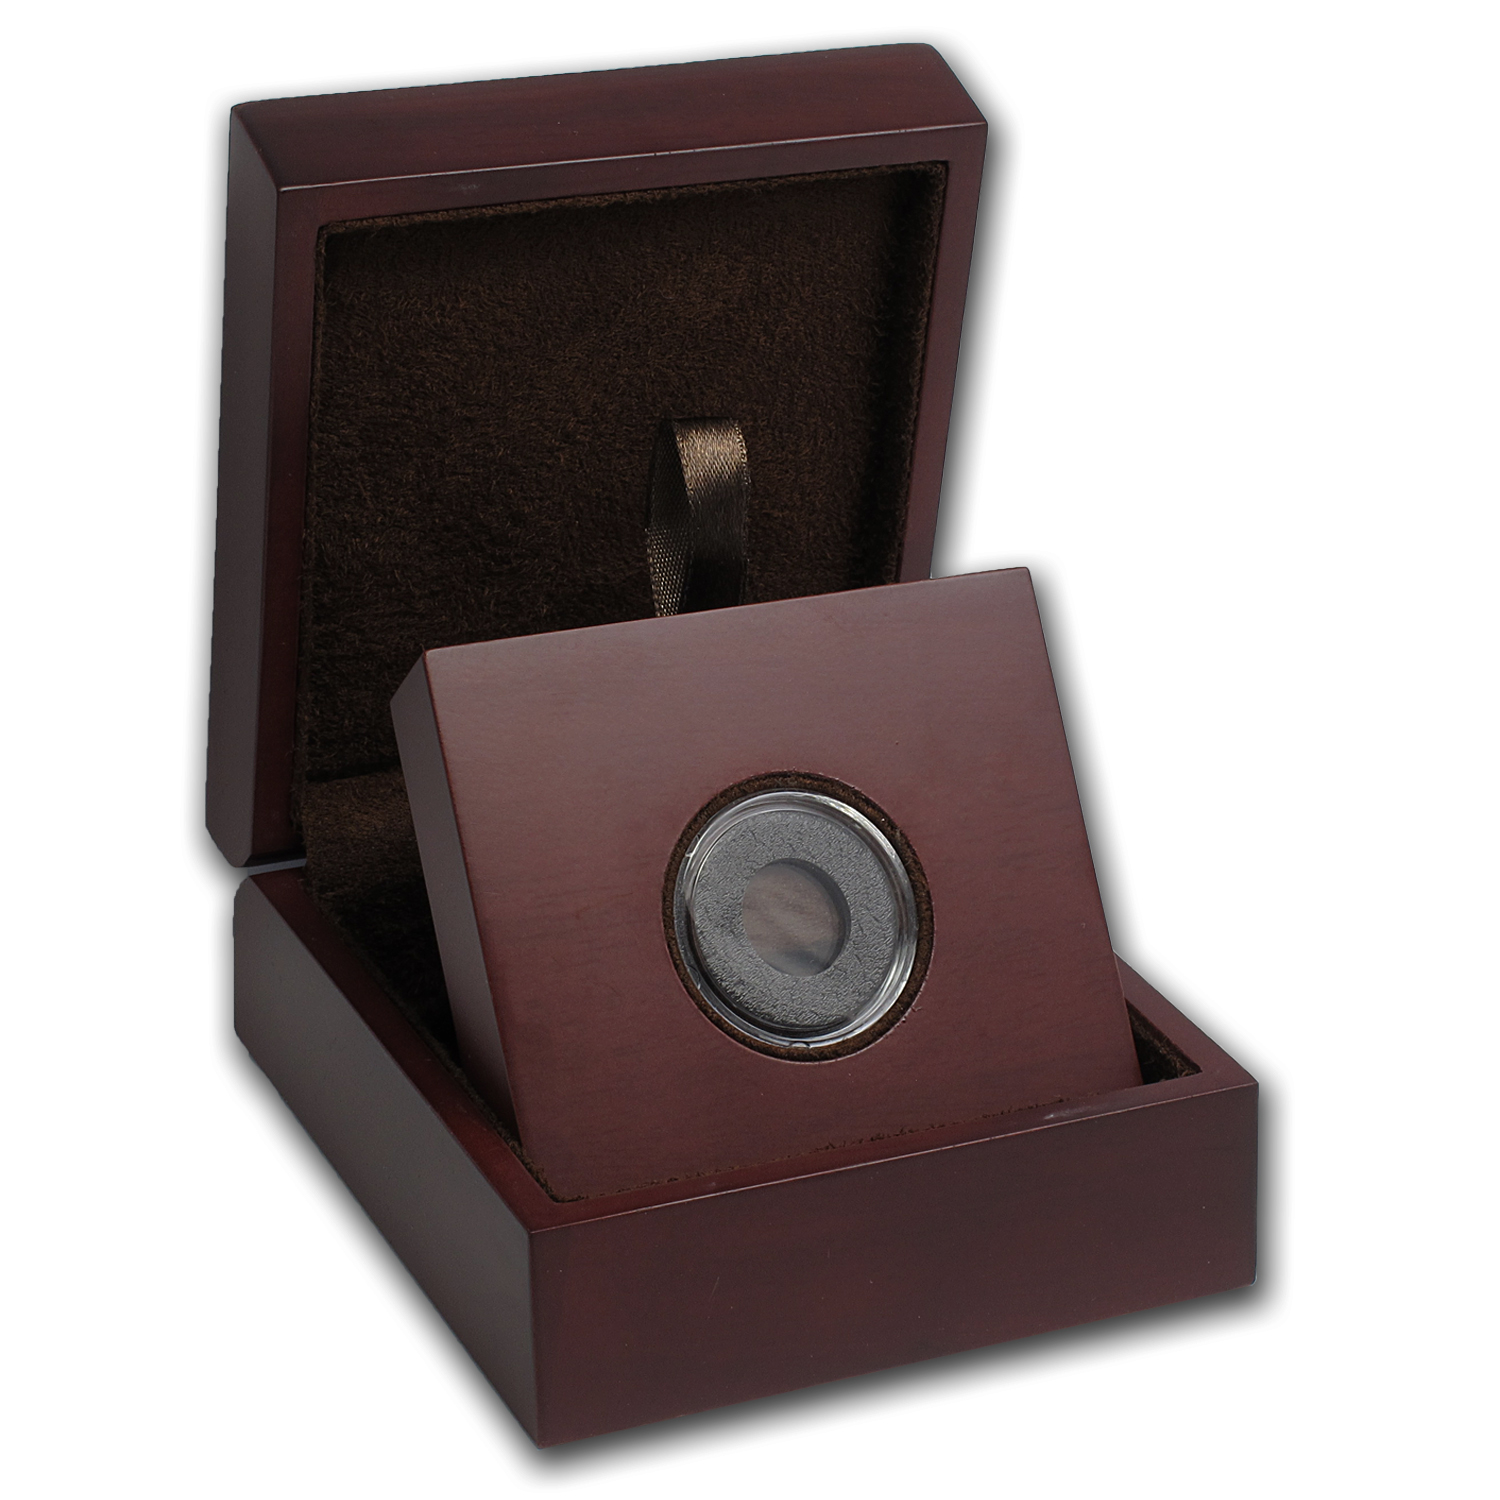 APMEX Wood Gift Box - Includes 15 mm Air-Tite Holder with Gasket